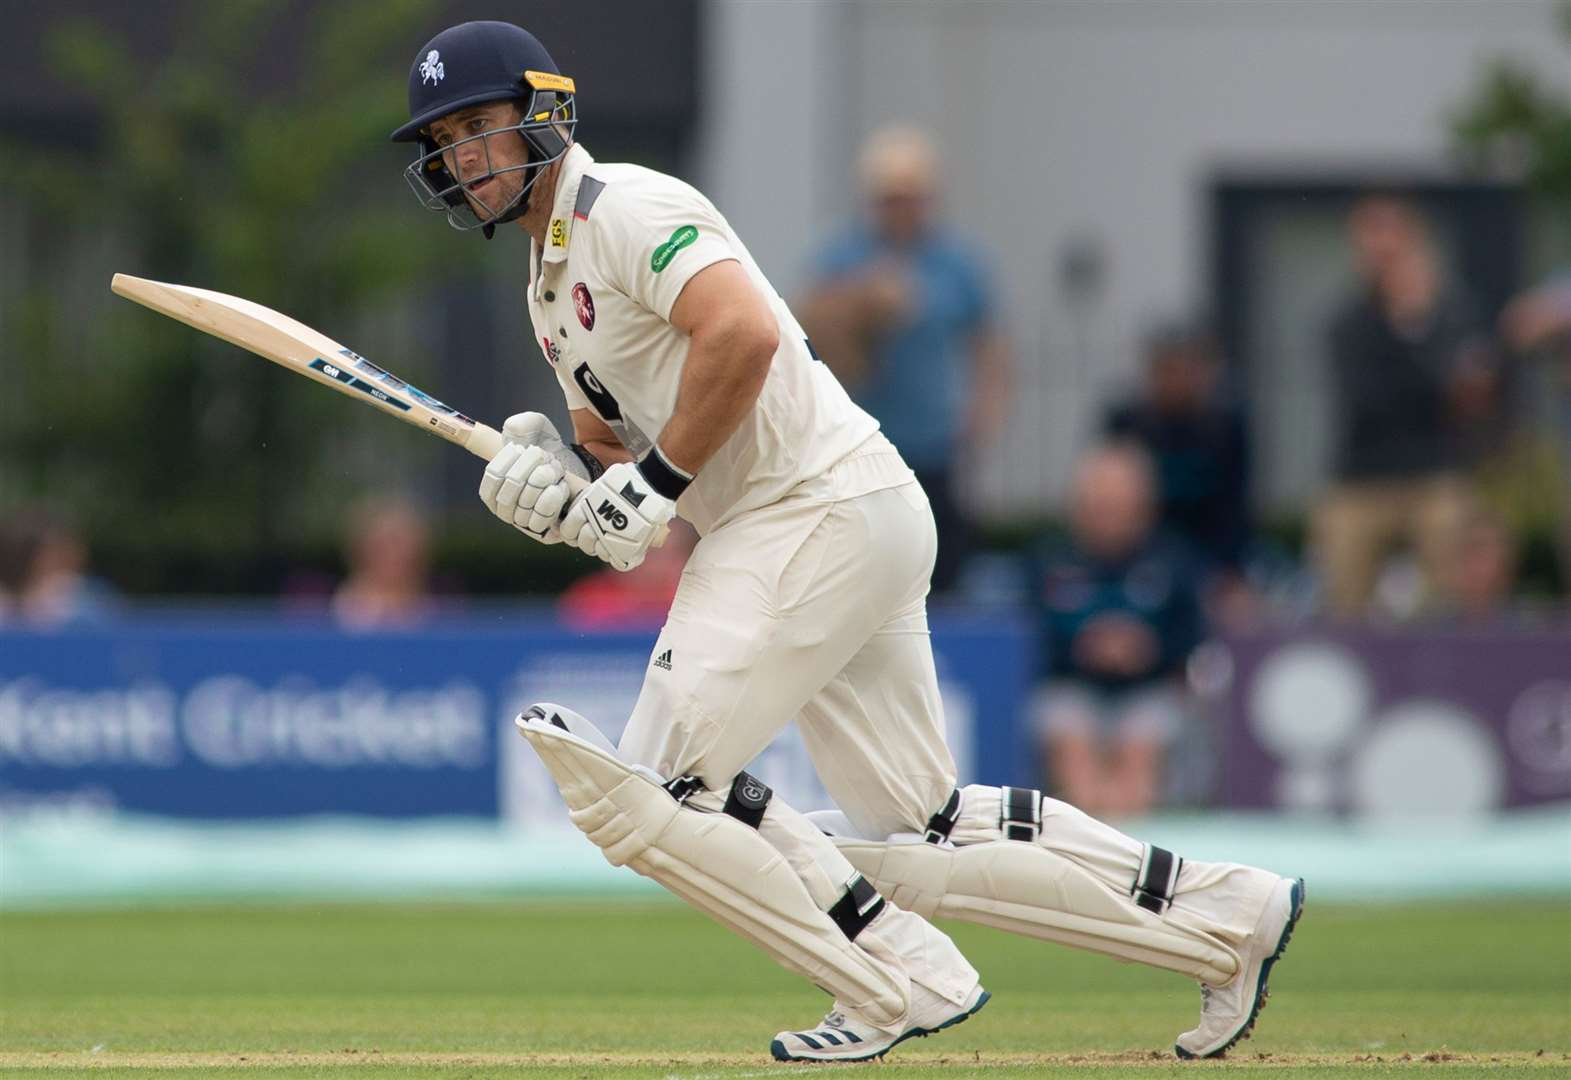 Kent Cricket's worst performance for 149 years